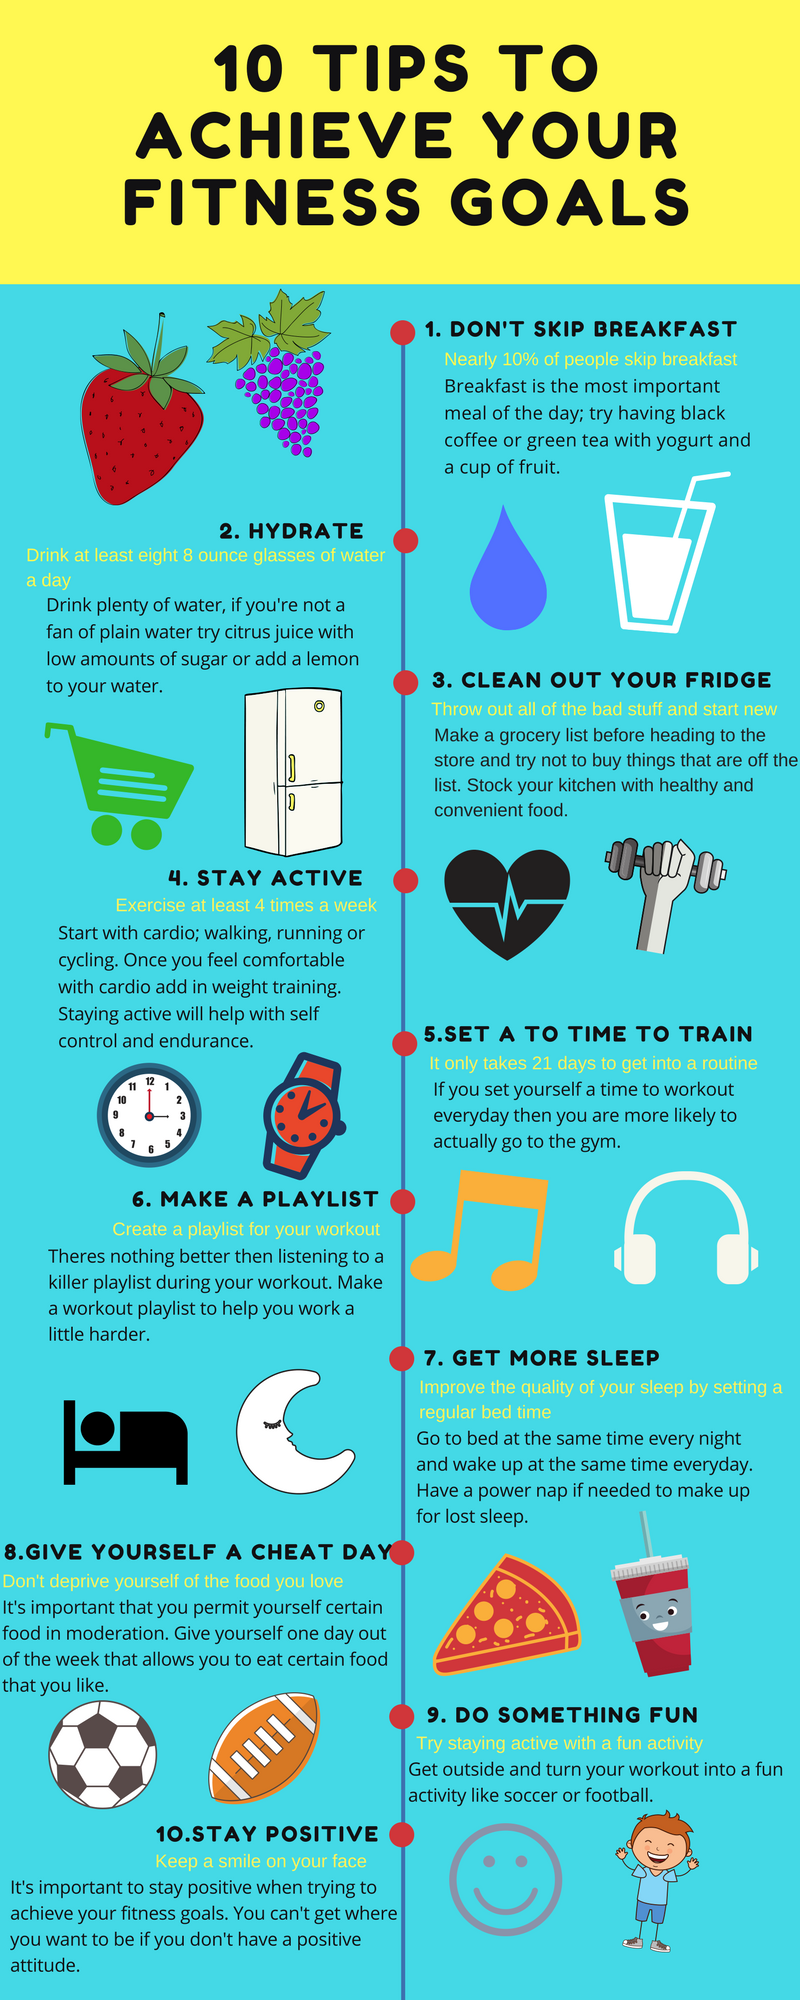 10 Tips To Achieve Fitness Goals #infographic